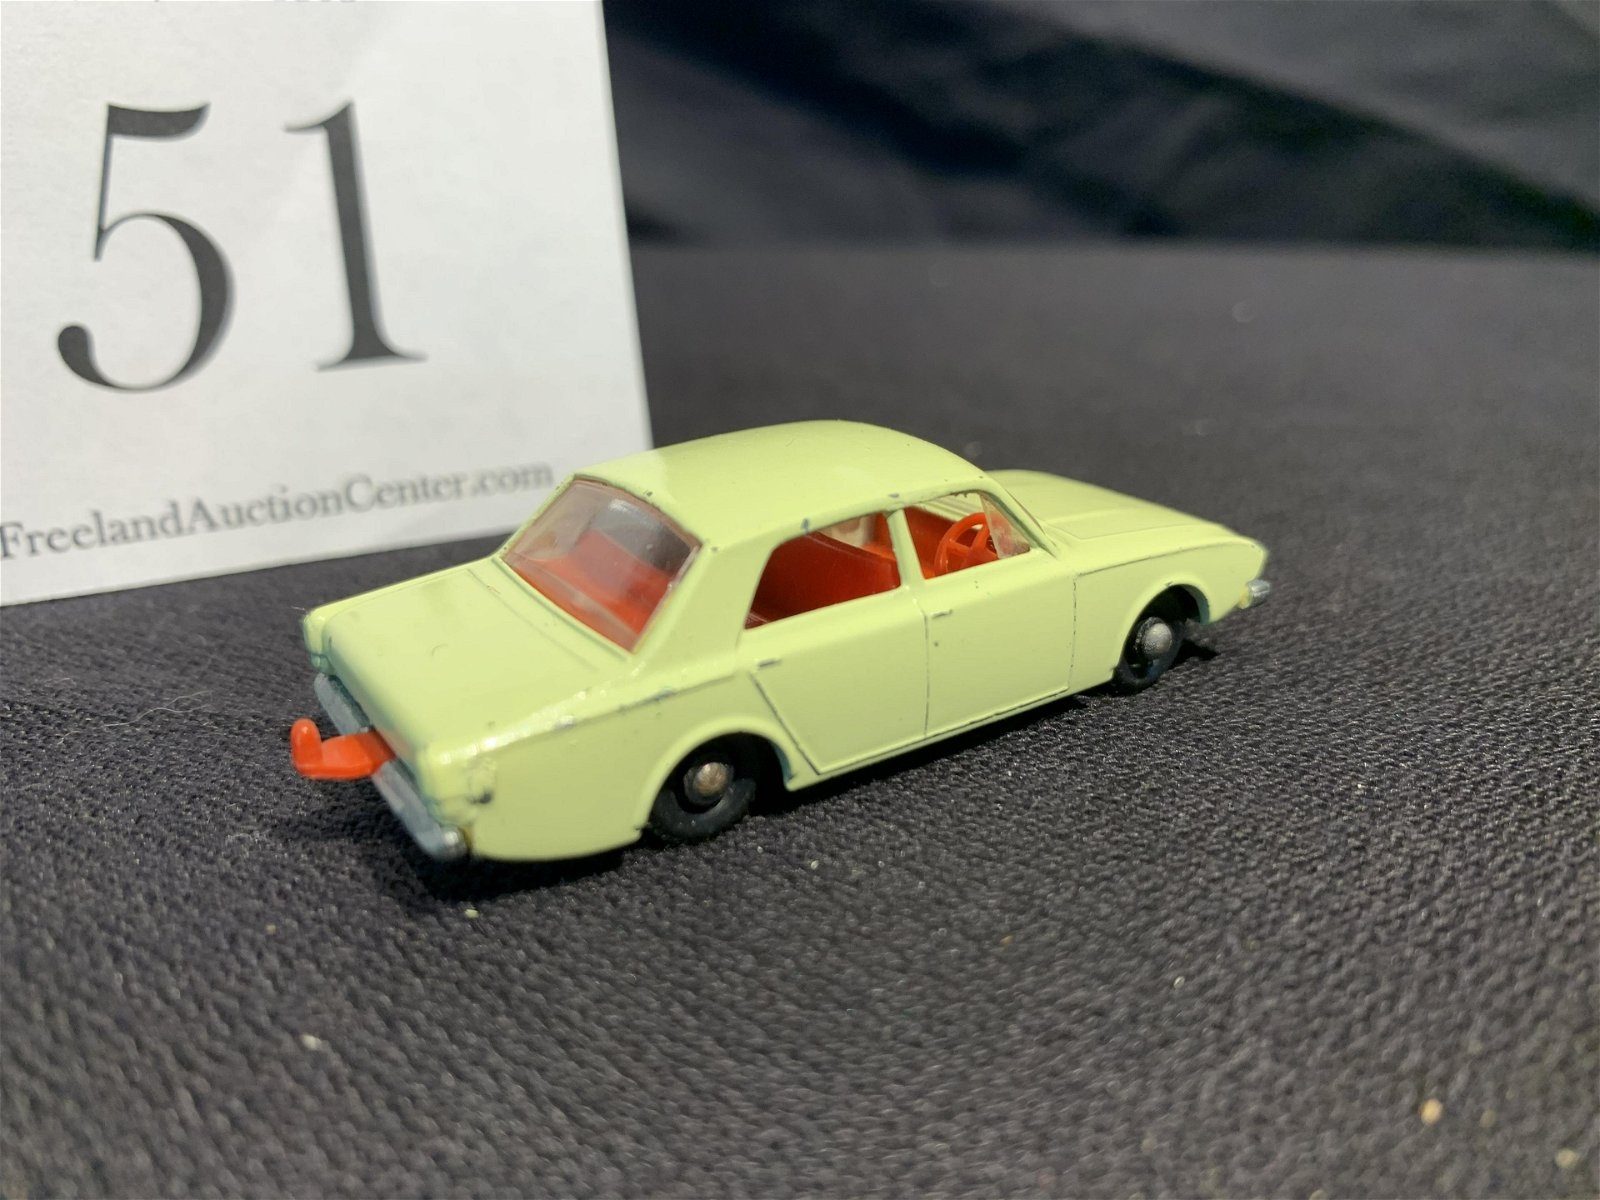 Matchbox Series No 45 Ford Corsair Made in England by